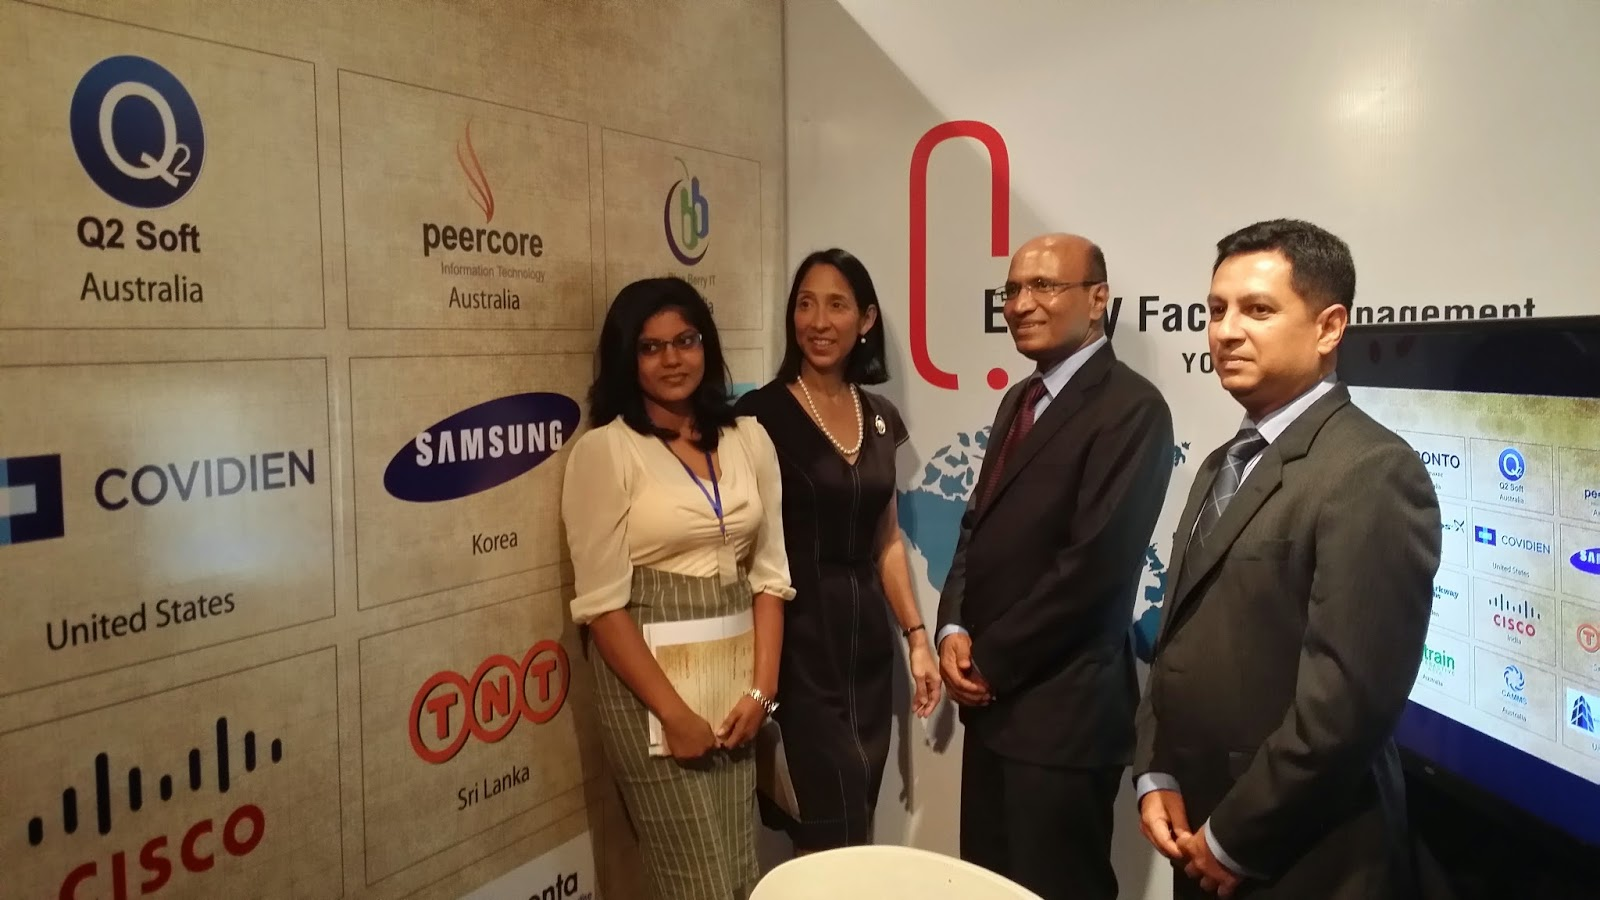 Envoy Facility Management Services Pvt. Ltd CEO Mr. Omer Fareed (third from left) with Ms Michele J Sison, US Ambassador in Sri Lanka (second from left), Mr Warren Mills the Group HR Manager and Ms Fahmida Mohamed, Business Development Executive at Envoy Facility Management Services Pvt. Ltd.